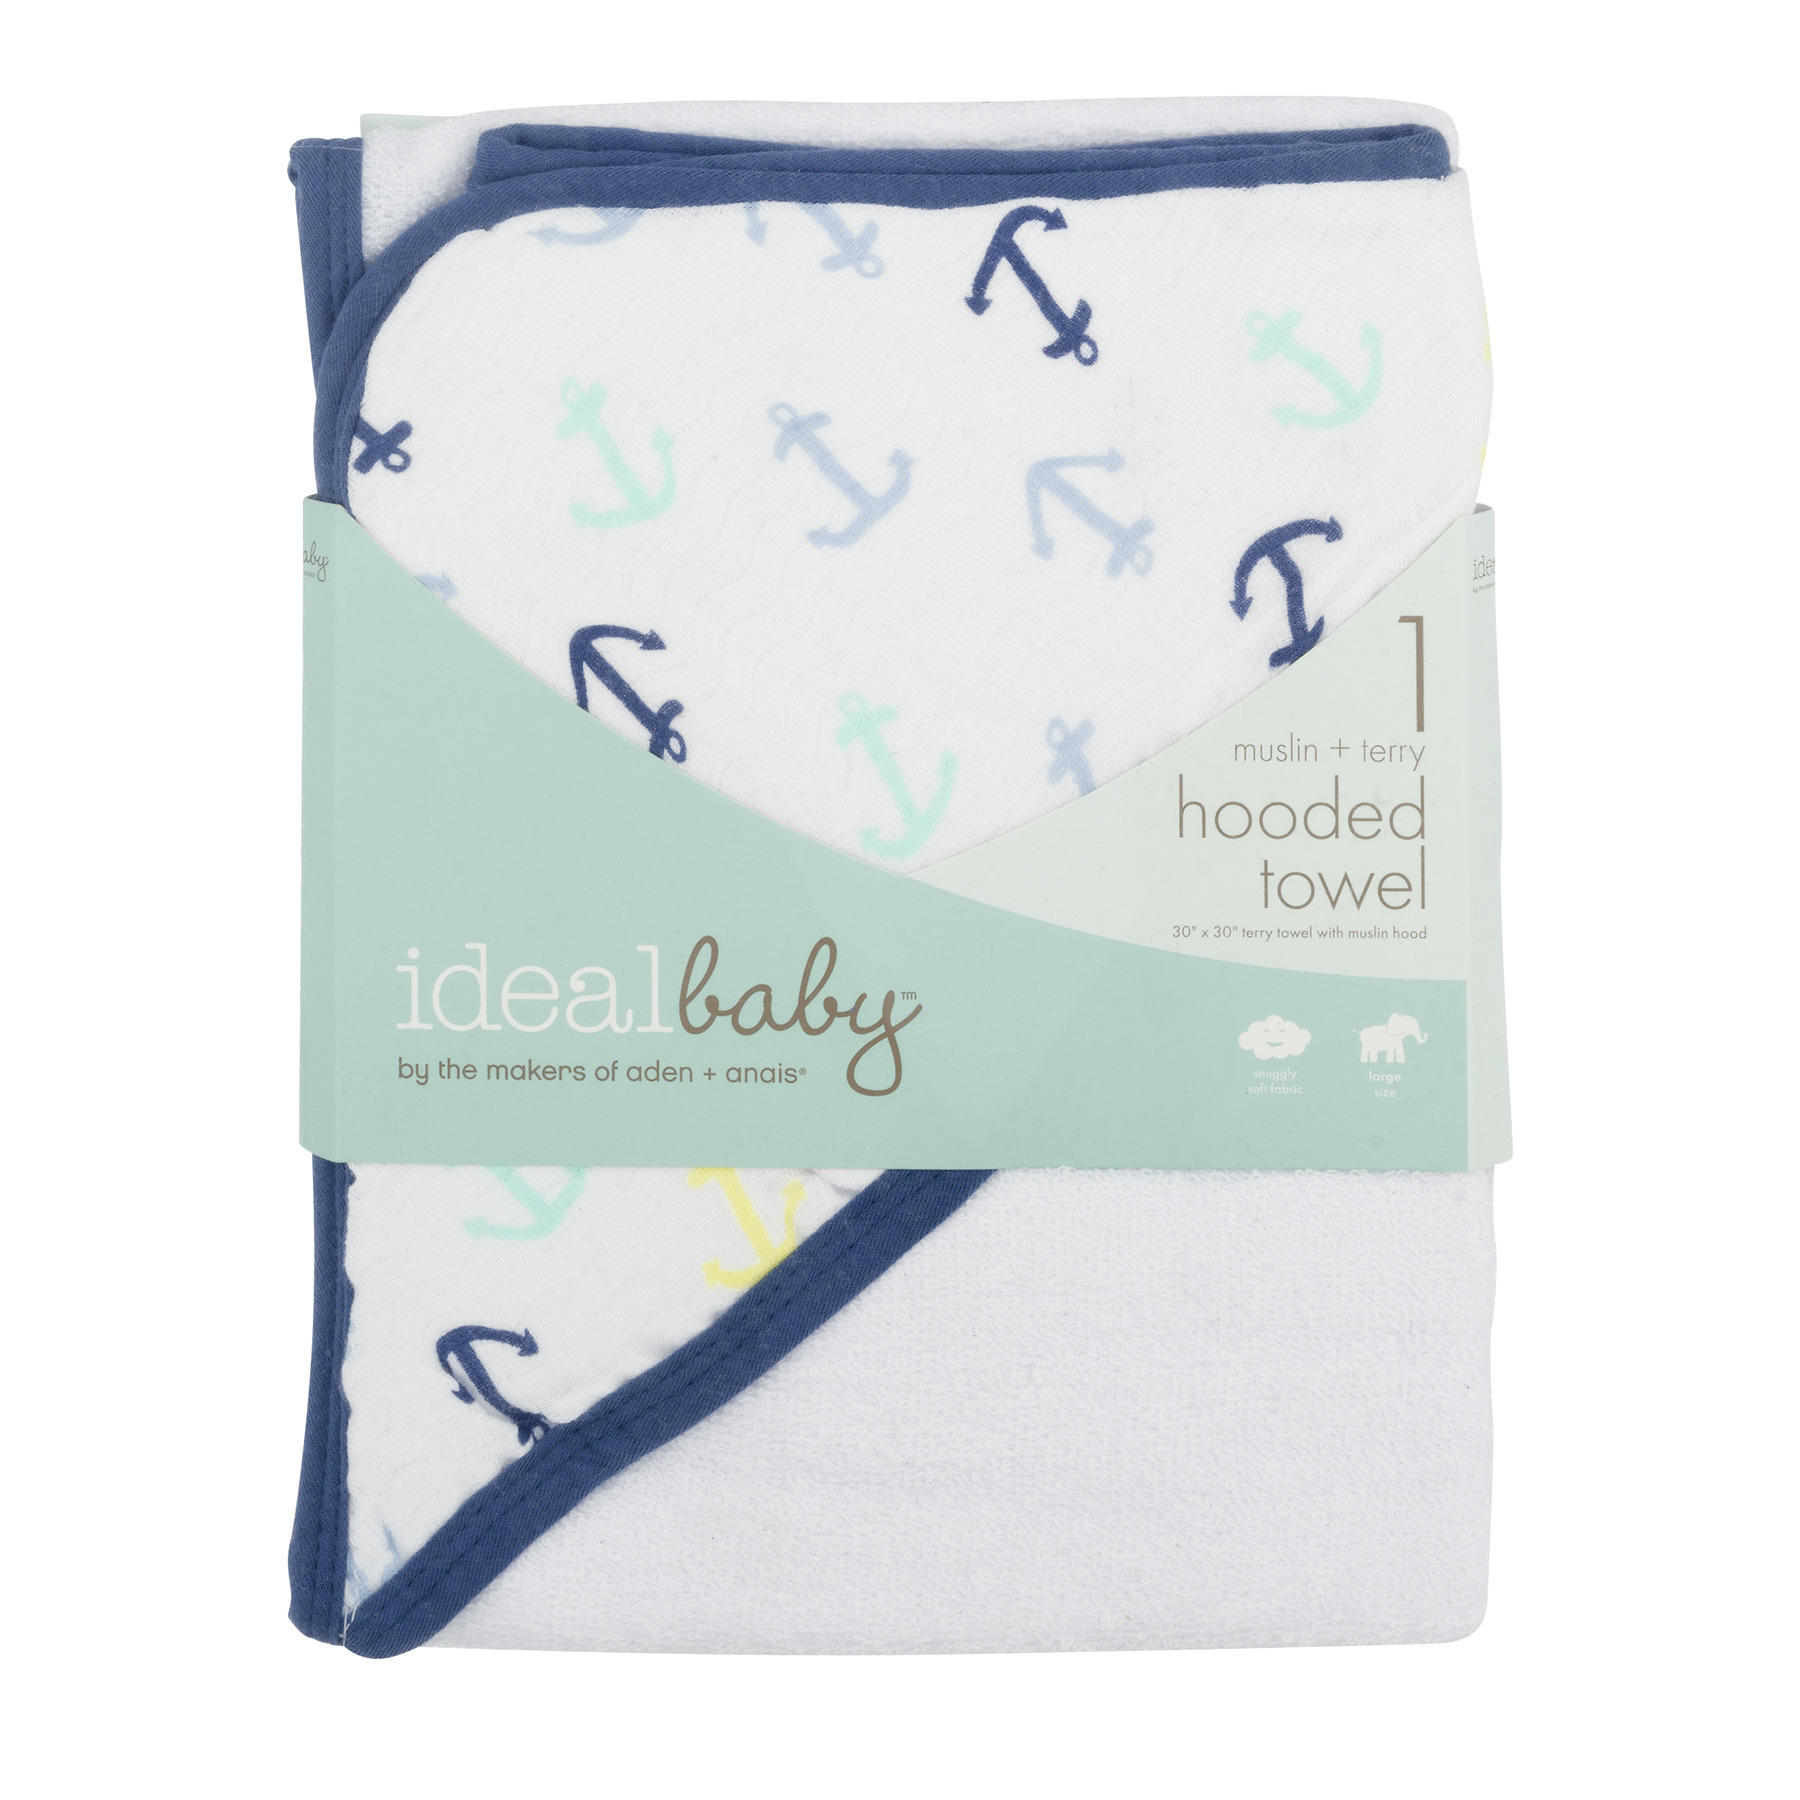 ideal baby by the makers of aden + anais Hooded Towel, Dreamy